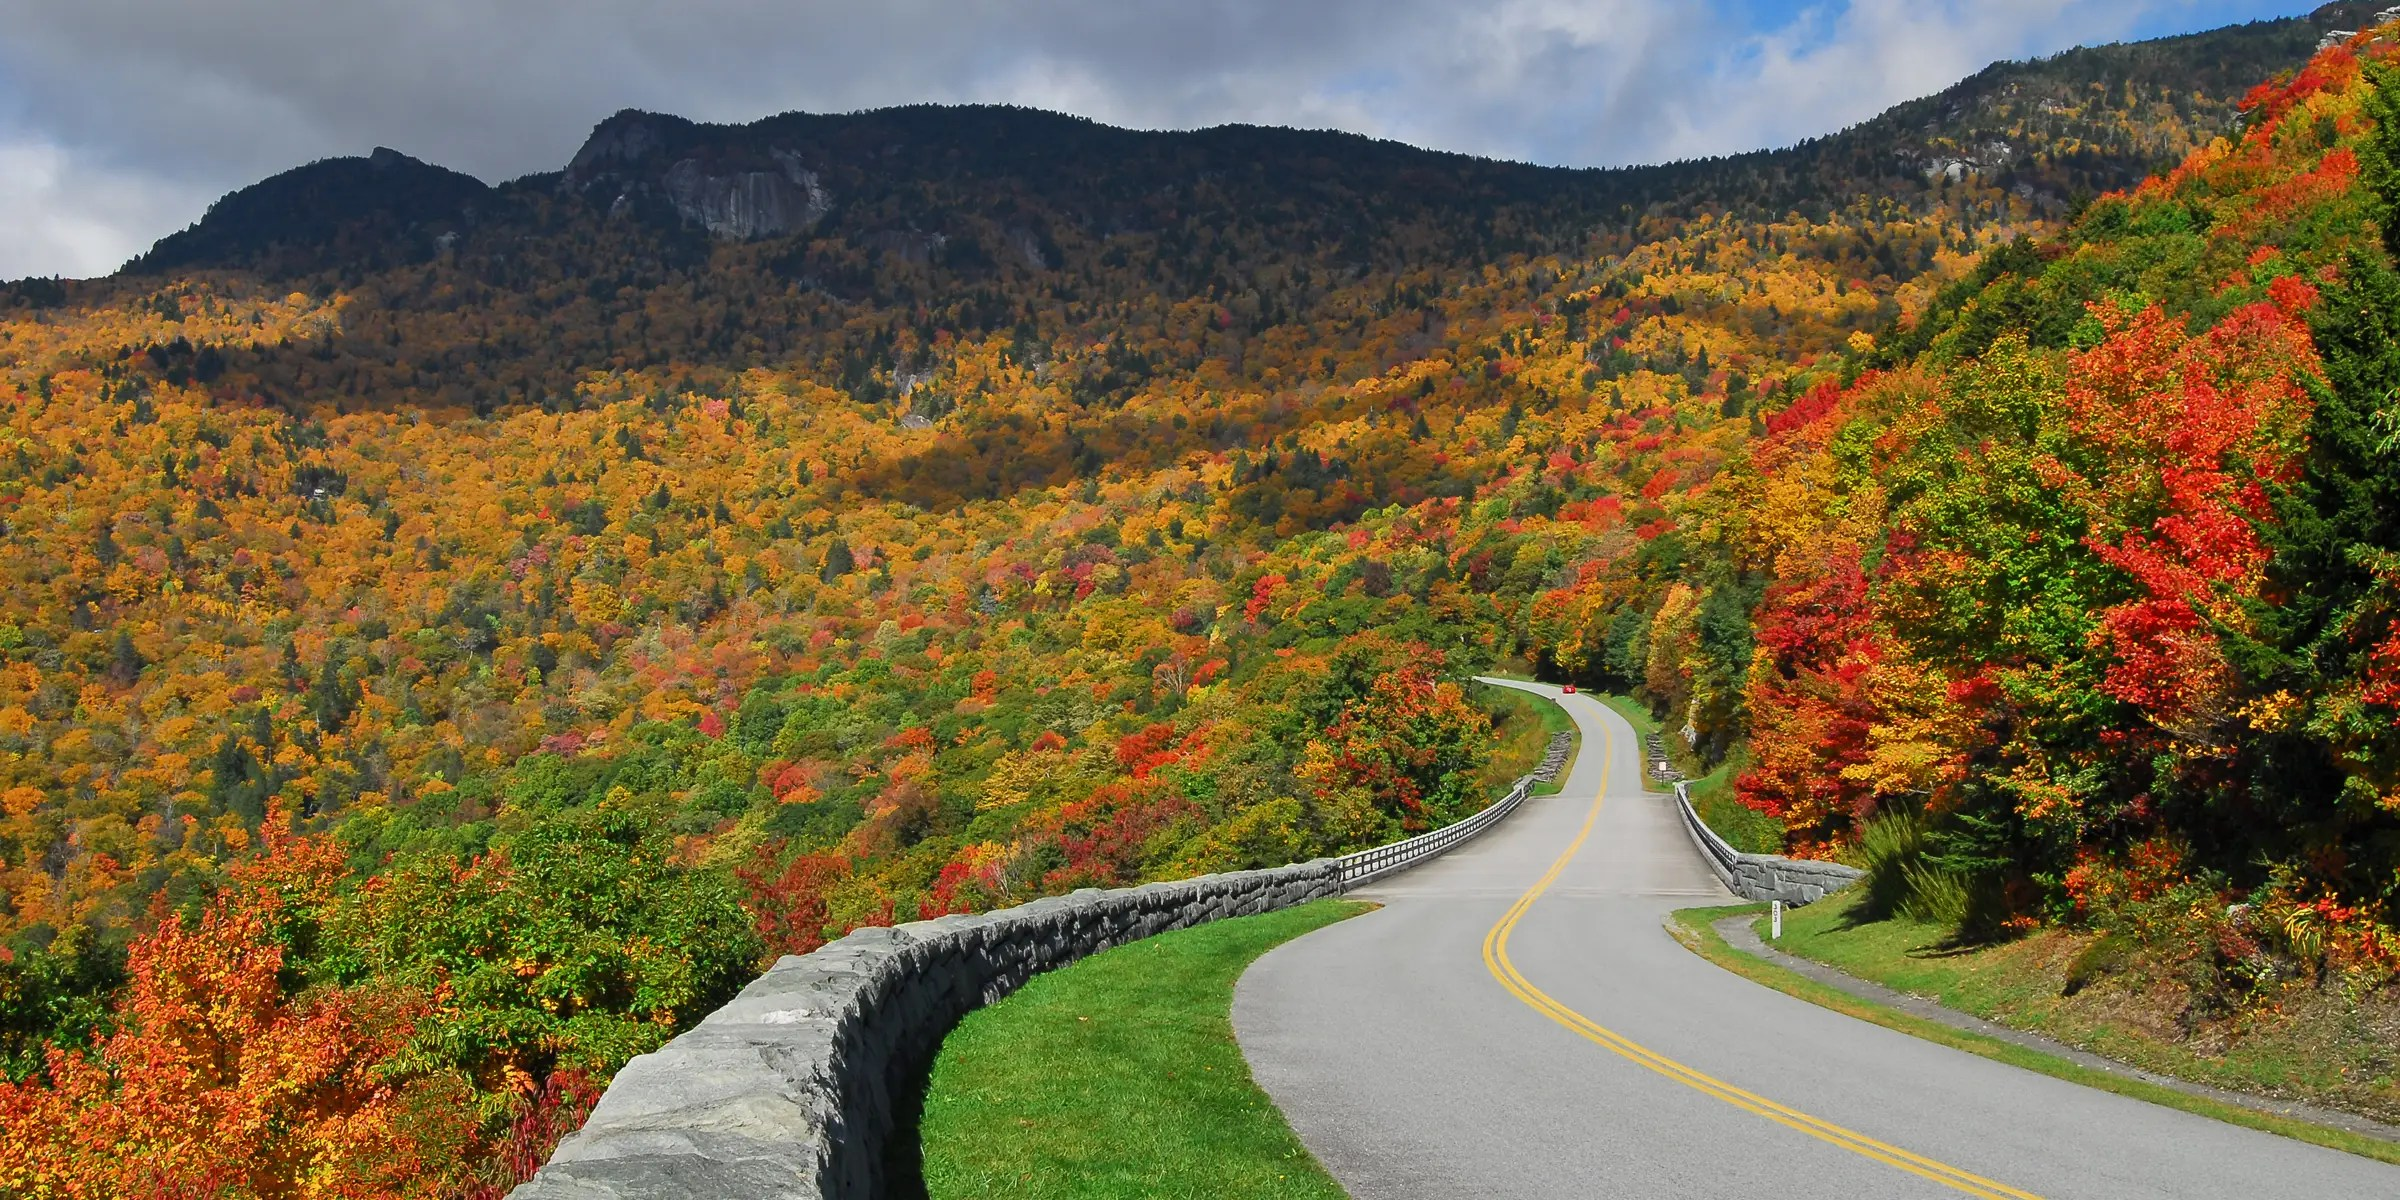 The Blue Ridge Parkway runs from North Carolina to Virginia and is known for its views of rugged mountains and the Appalachian Highlands.